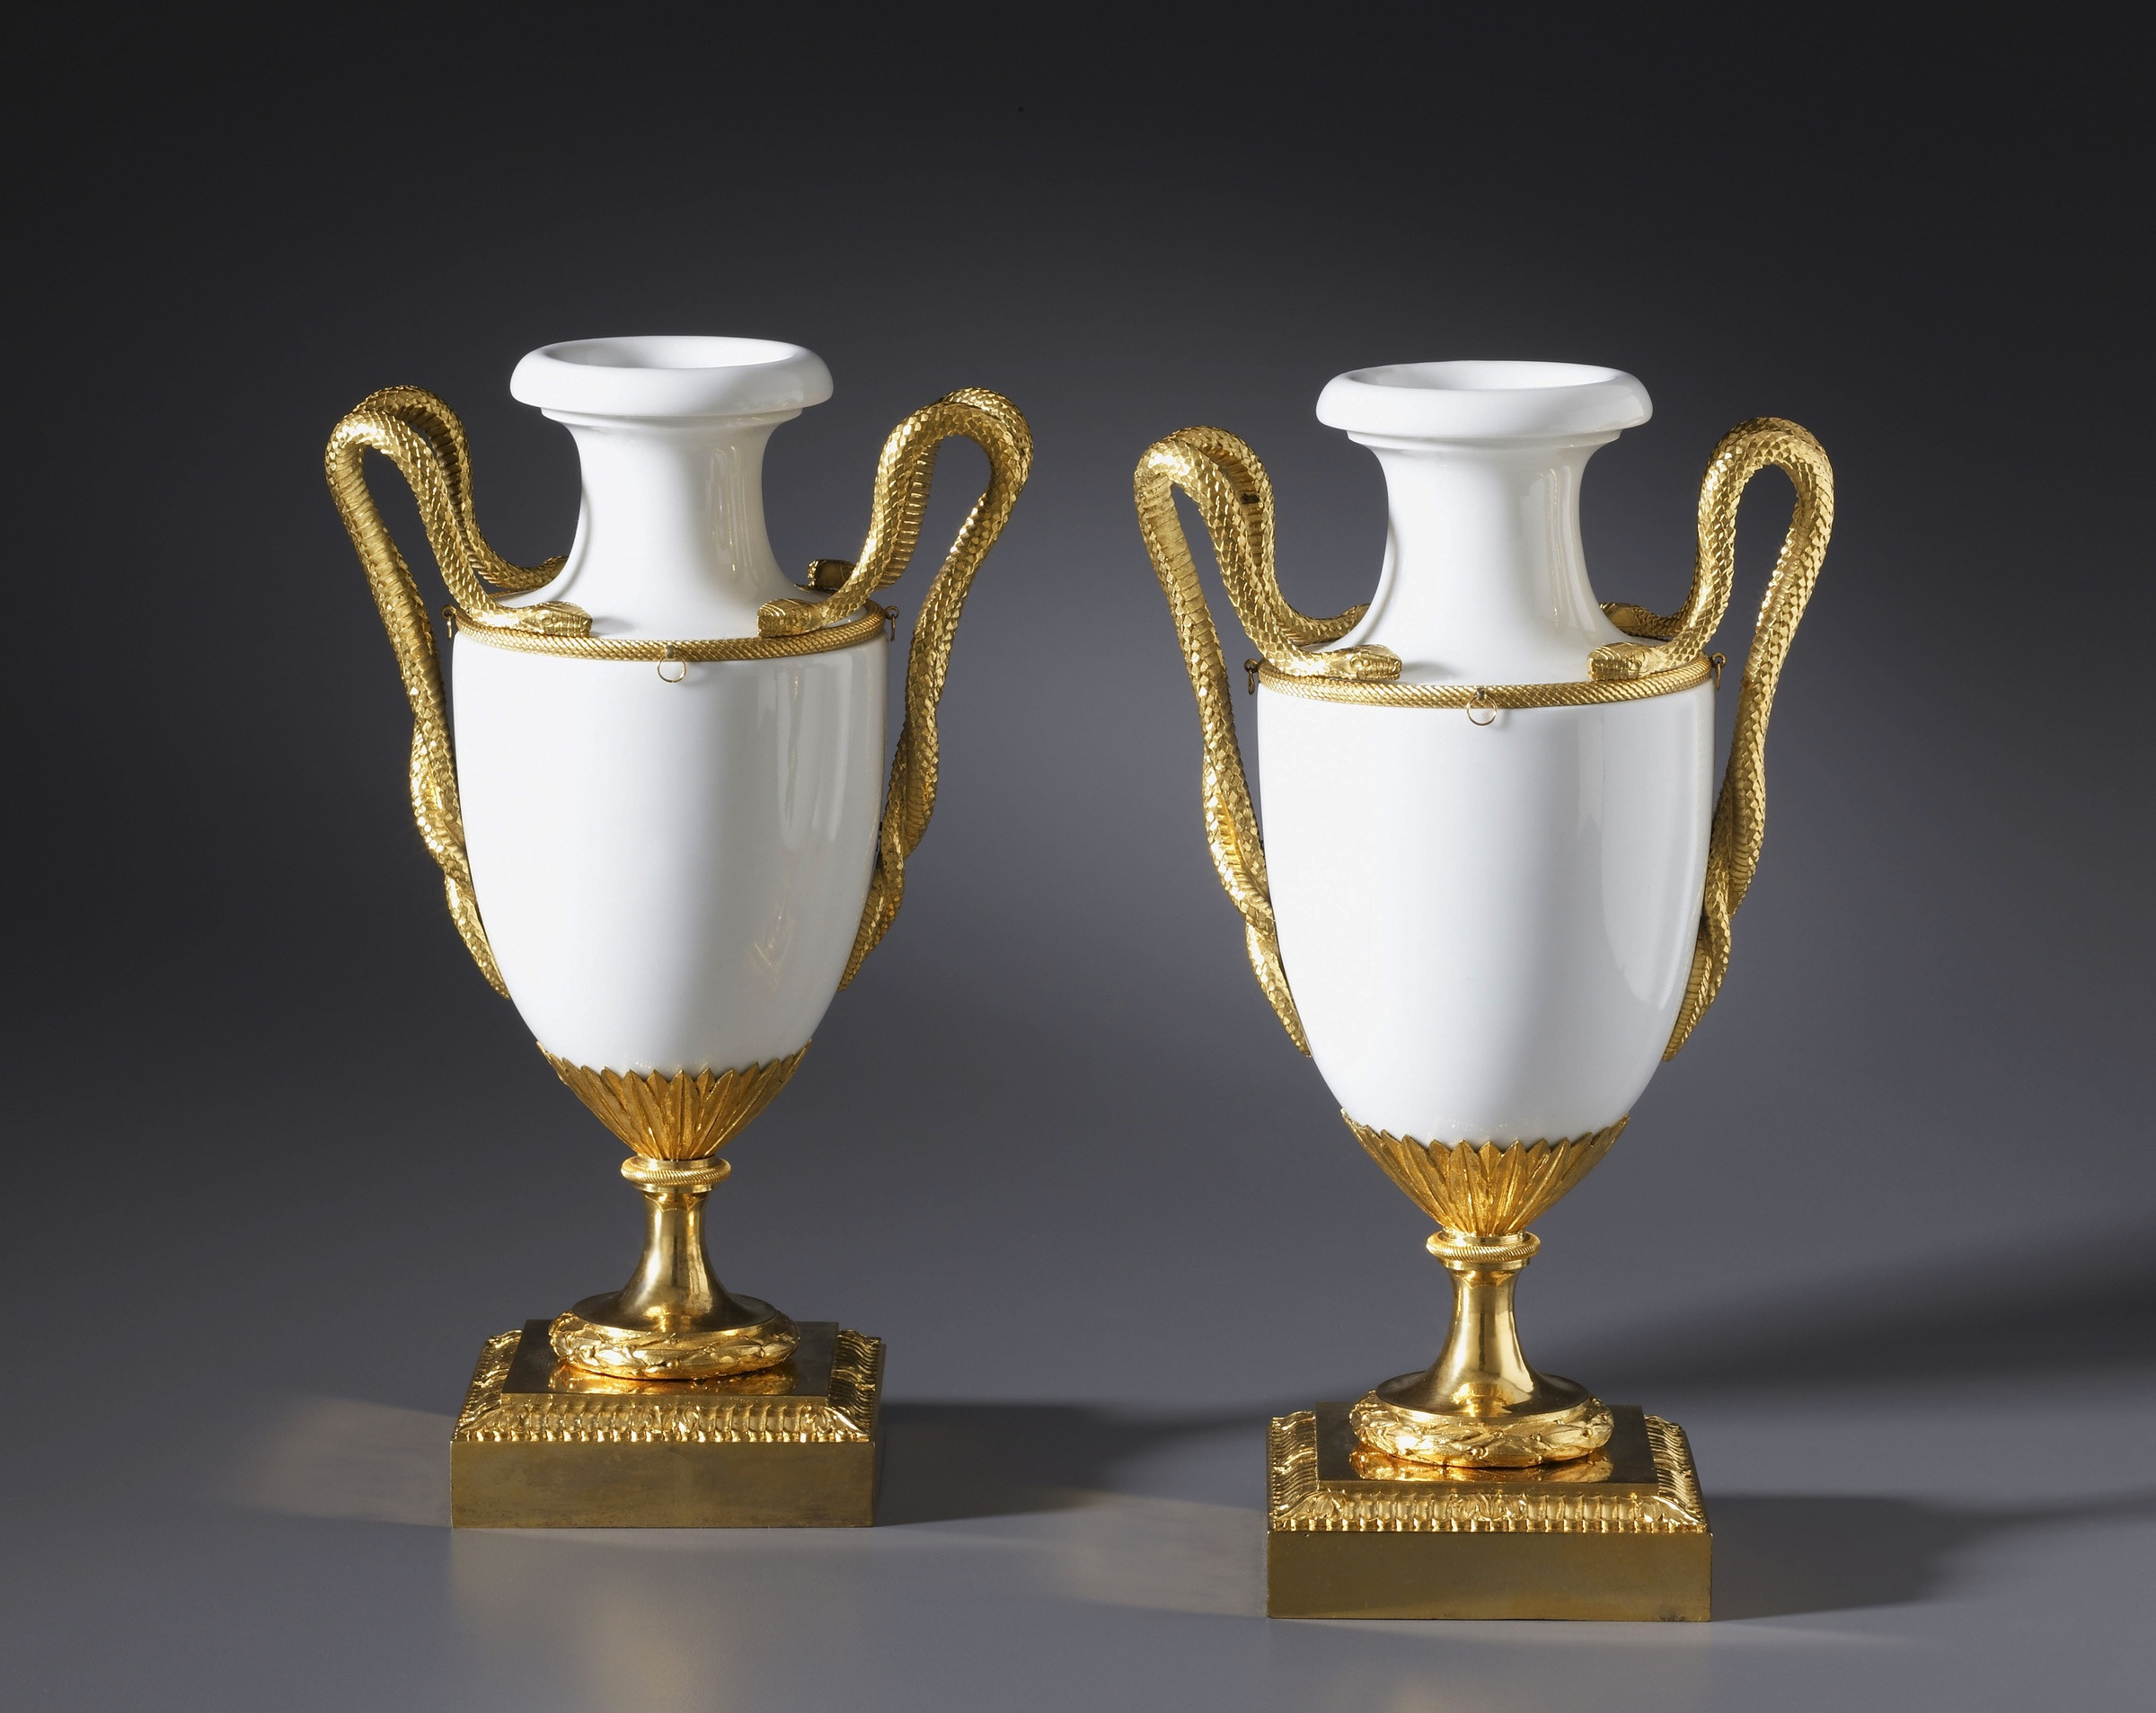 glass vase manufacturers of locra a pair of louis xvi vases by locra fabrique de la courtille with a pair of louis xvi vases by locra fabrique de la courtille